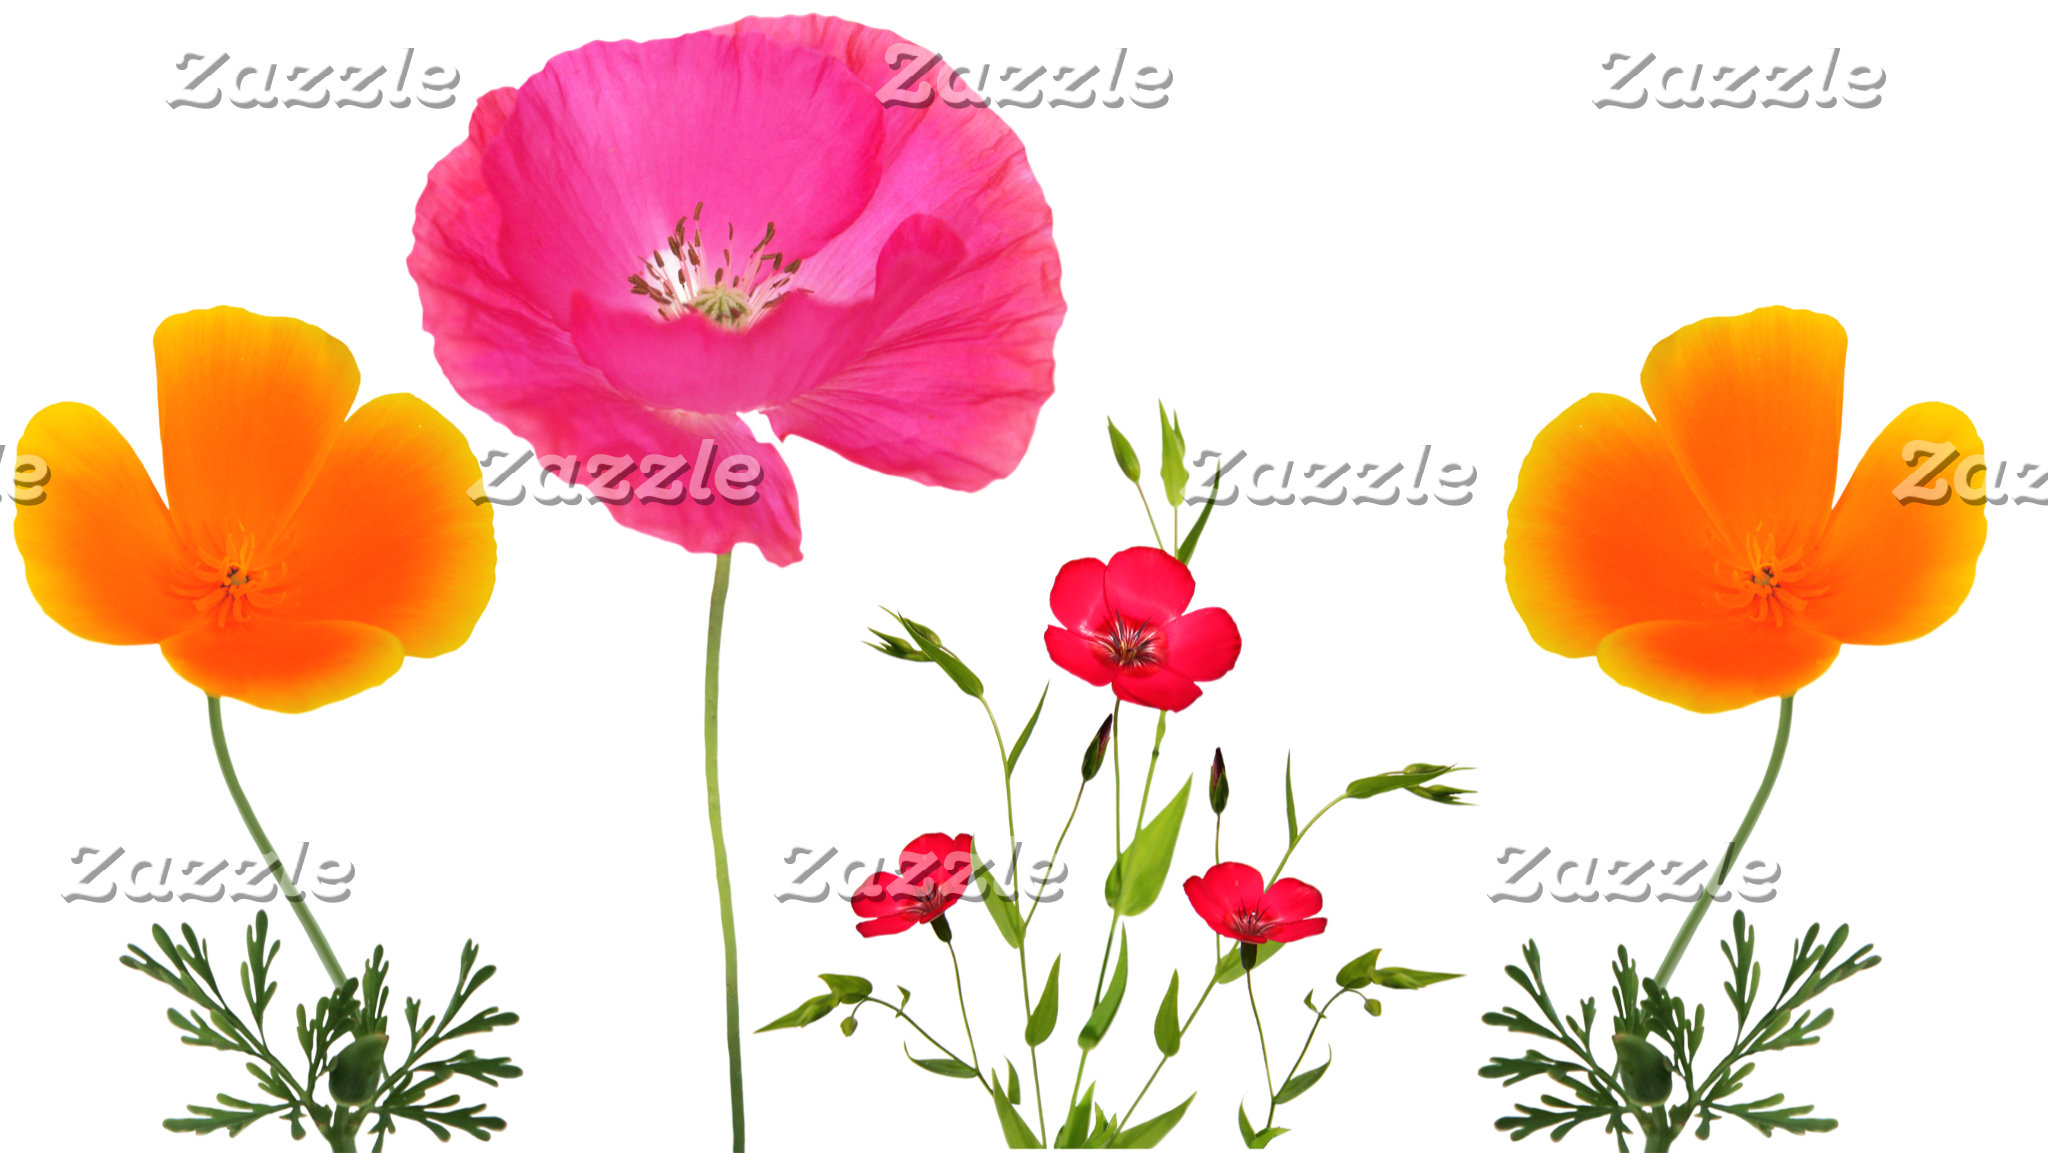 flowers against a white background